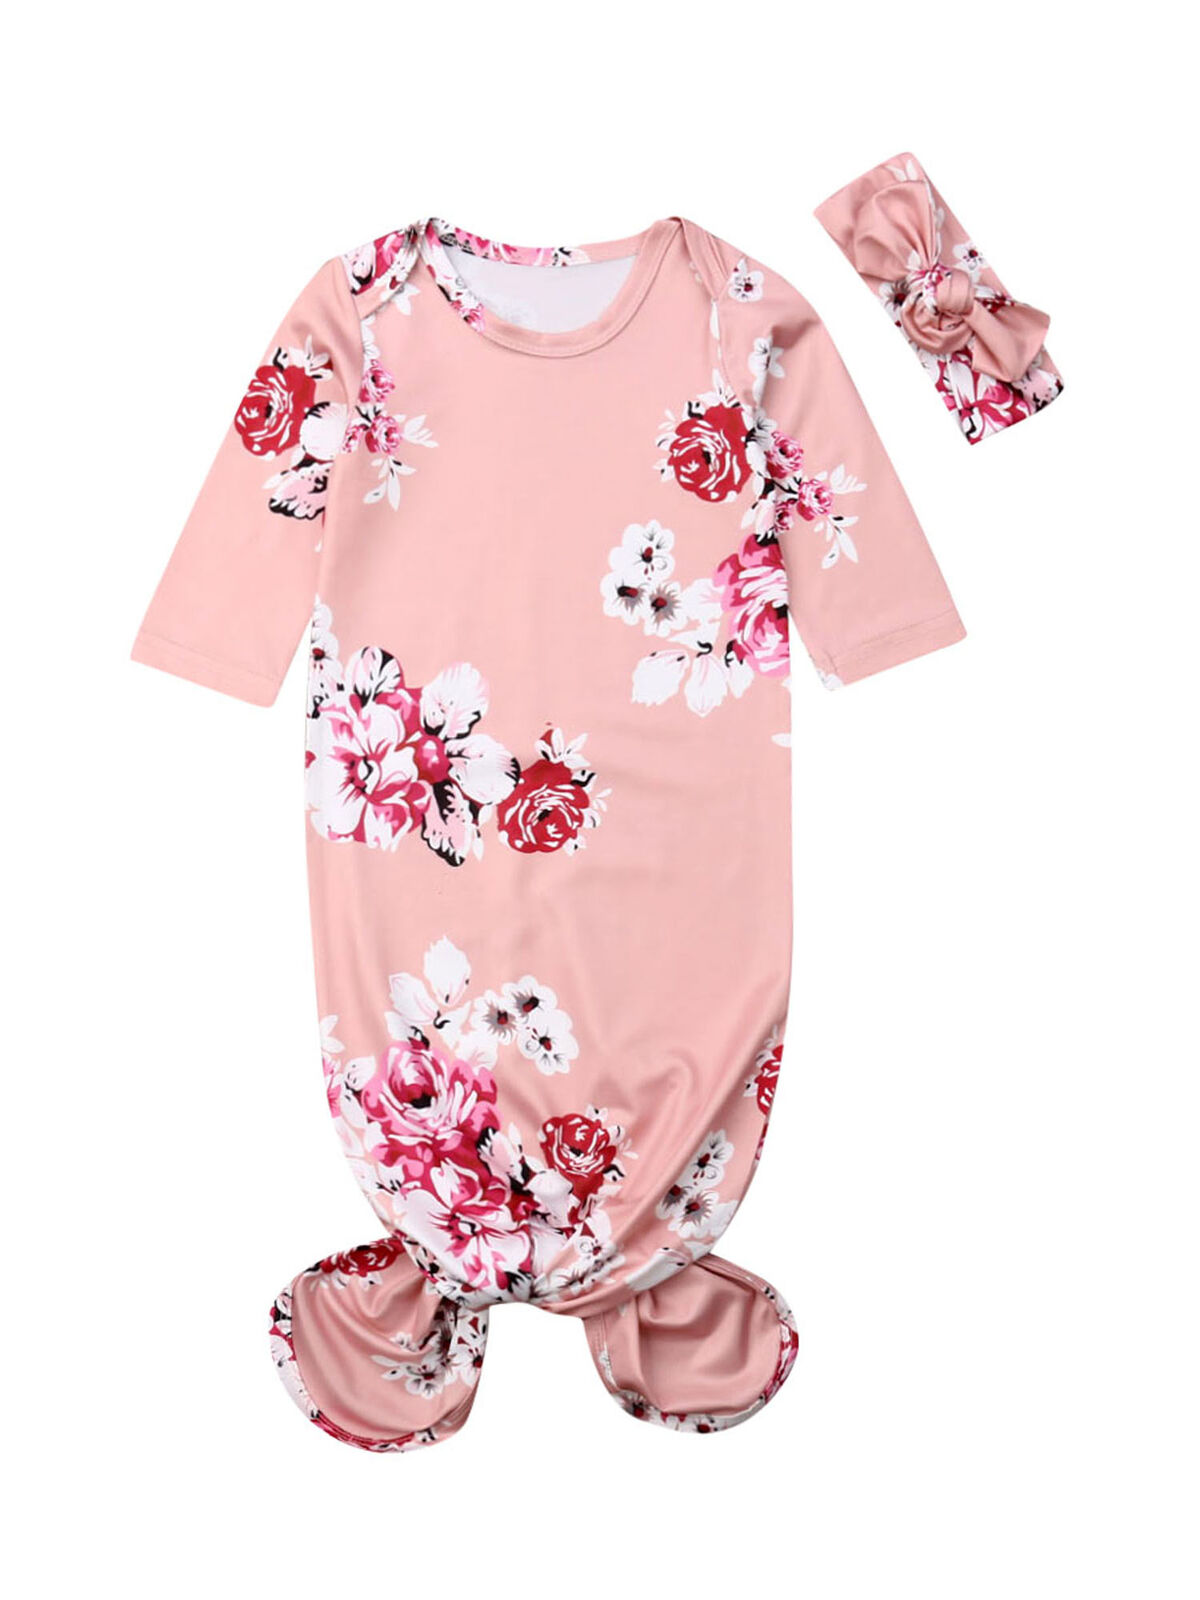 Baby Girl Floral Sleepwear Nightgowns with Headband Sleeping Bags Coming Home Outfits 0-6Months